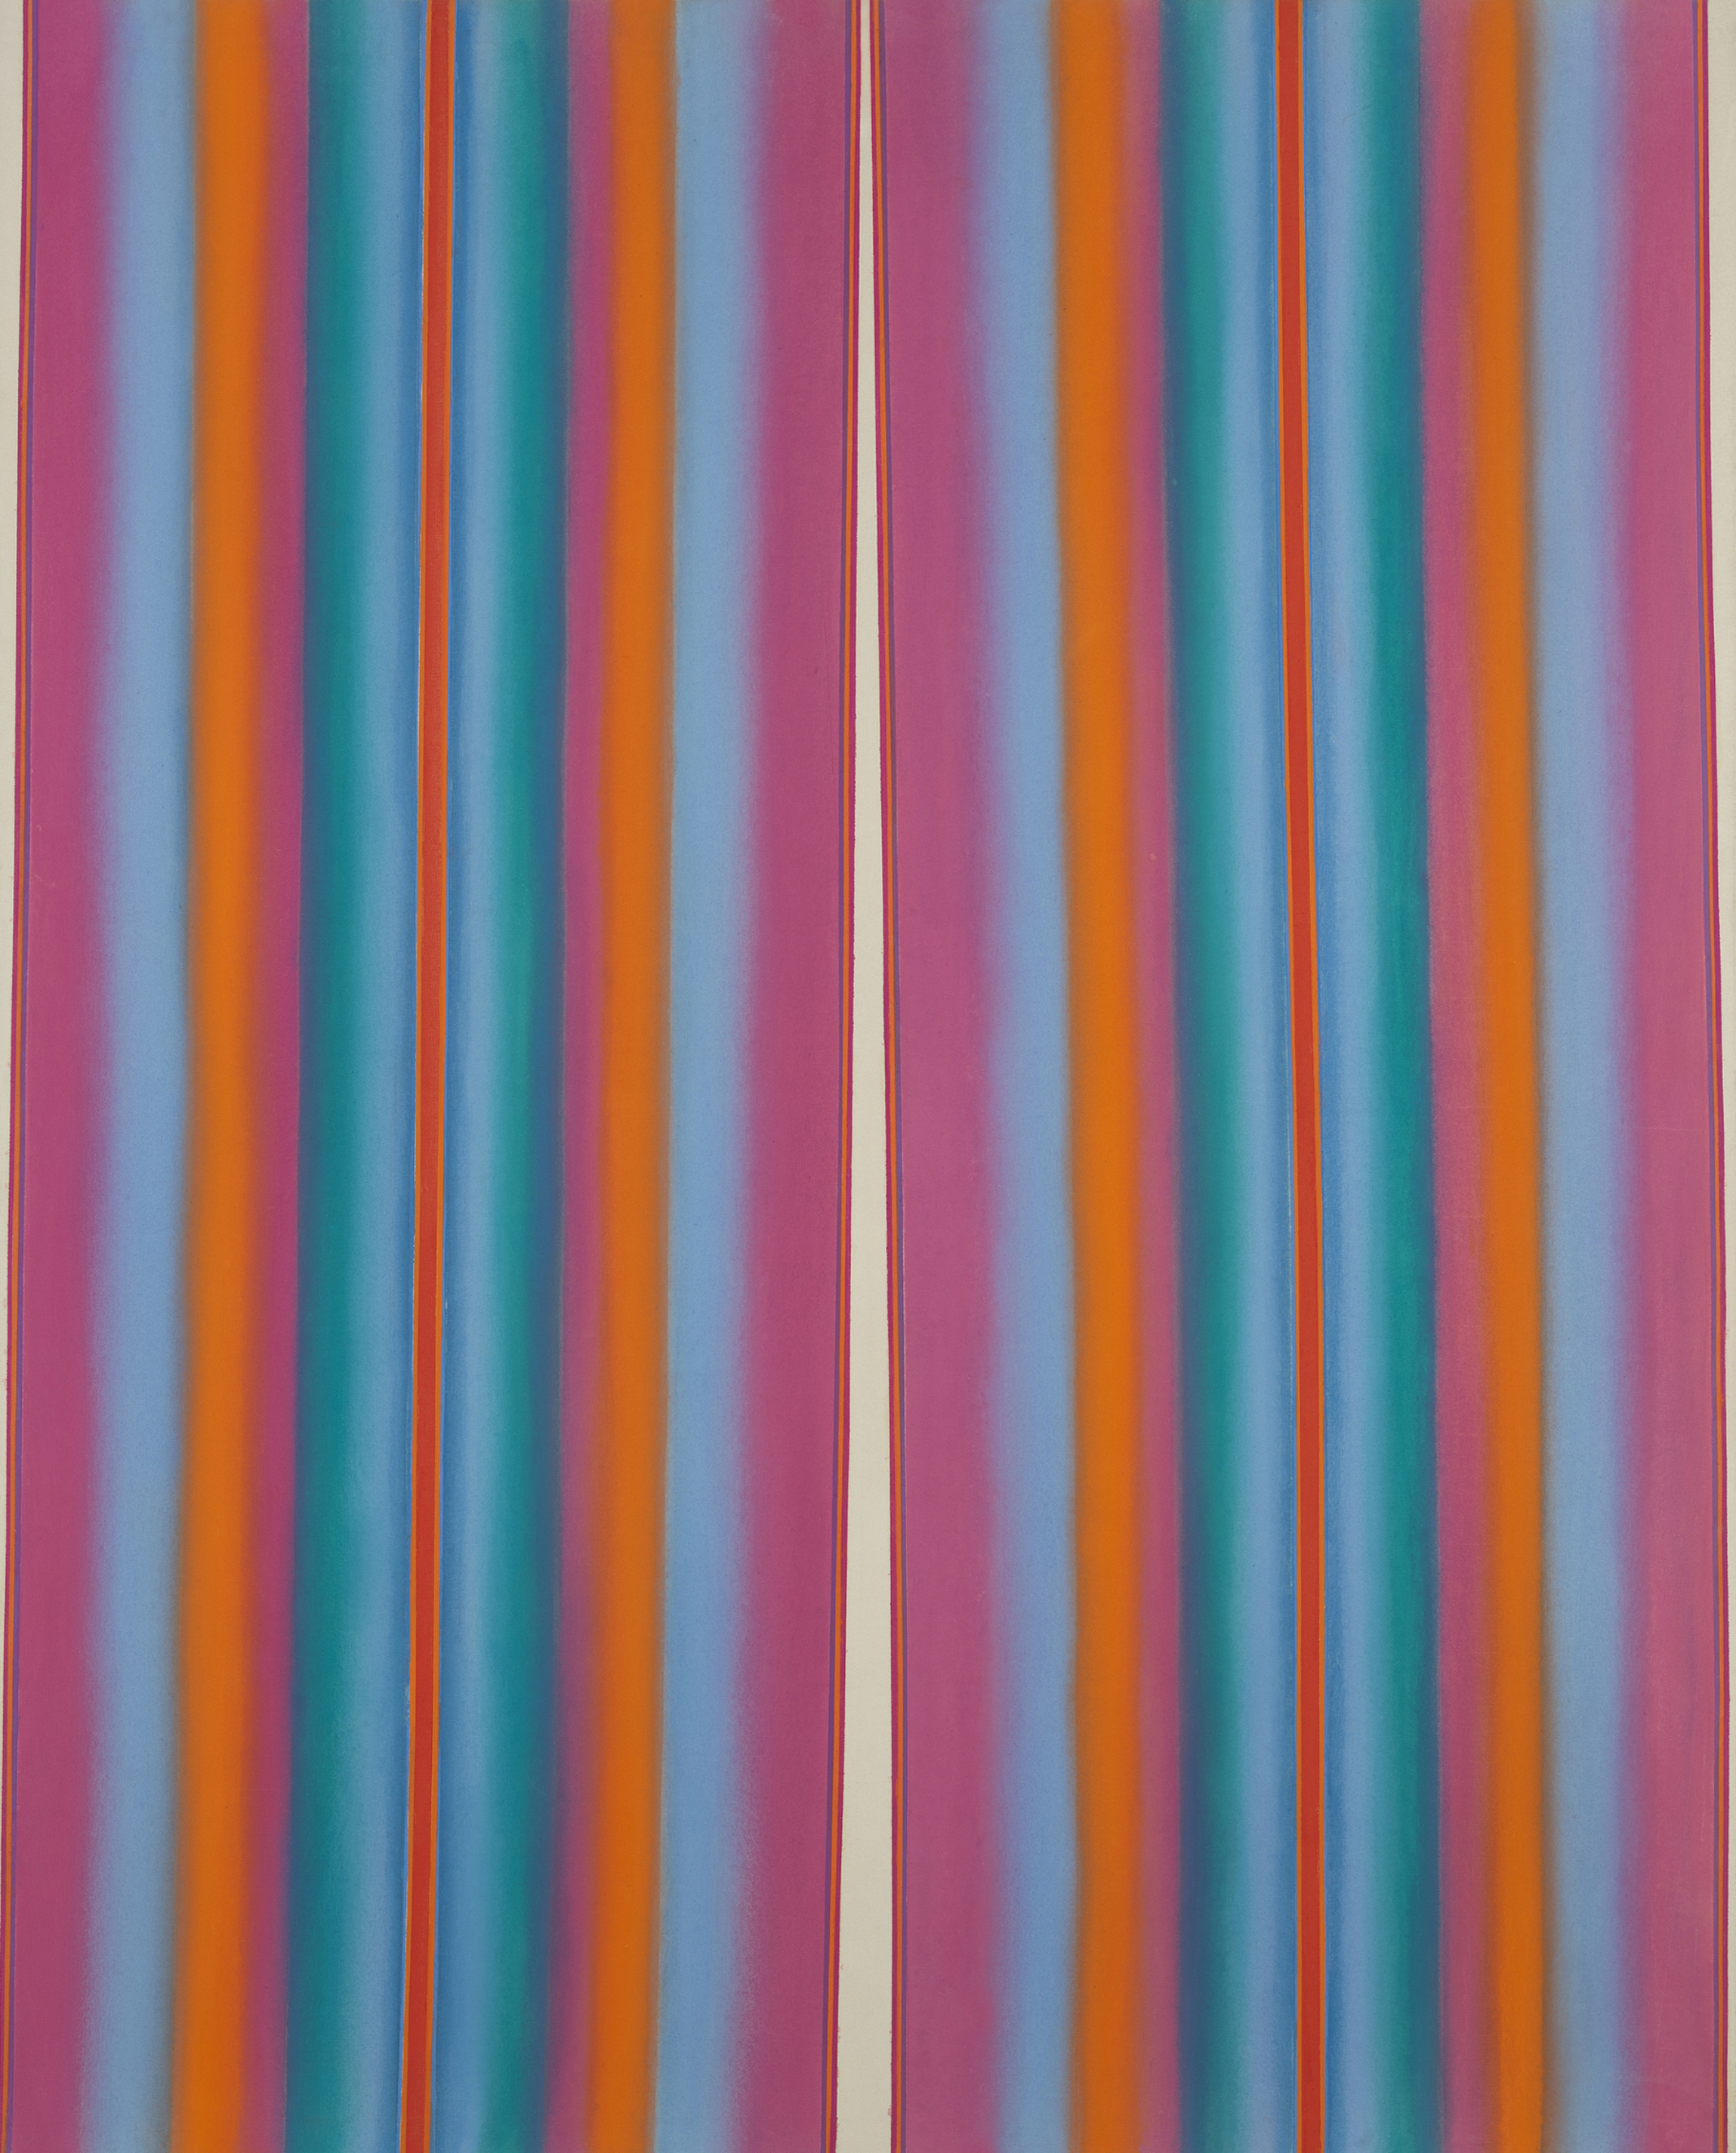 Cathedral #13, 1968  , oil on canvas, 90 x 72 inches